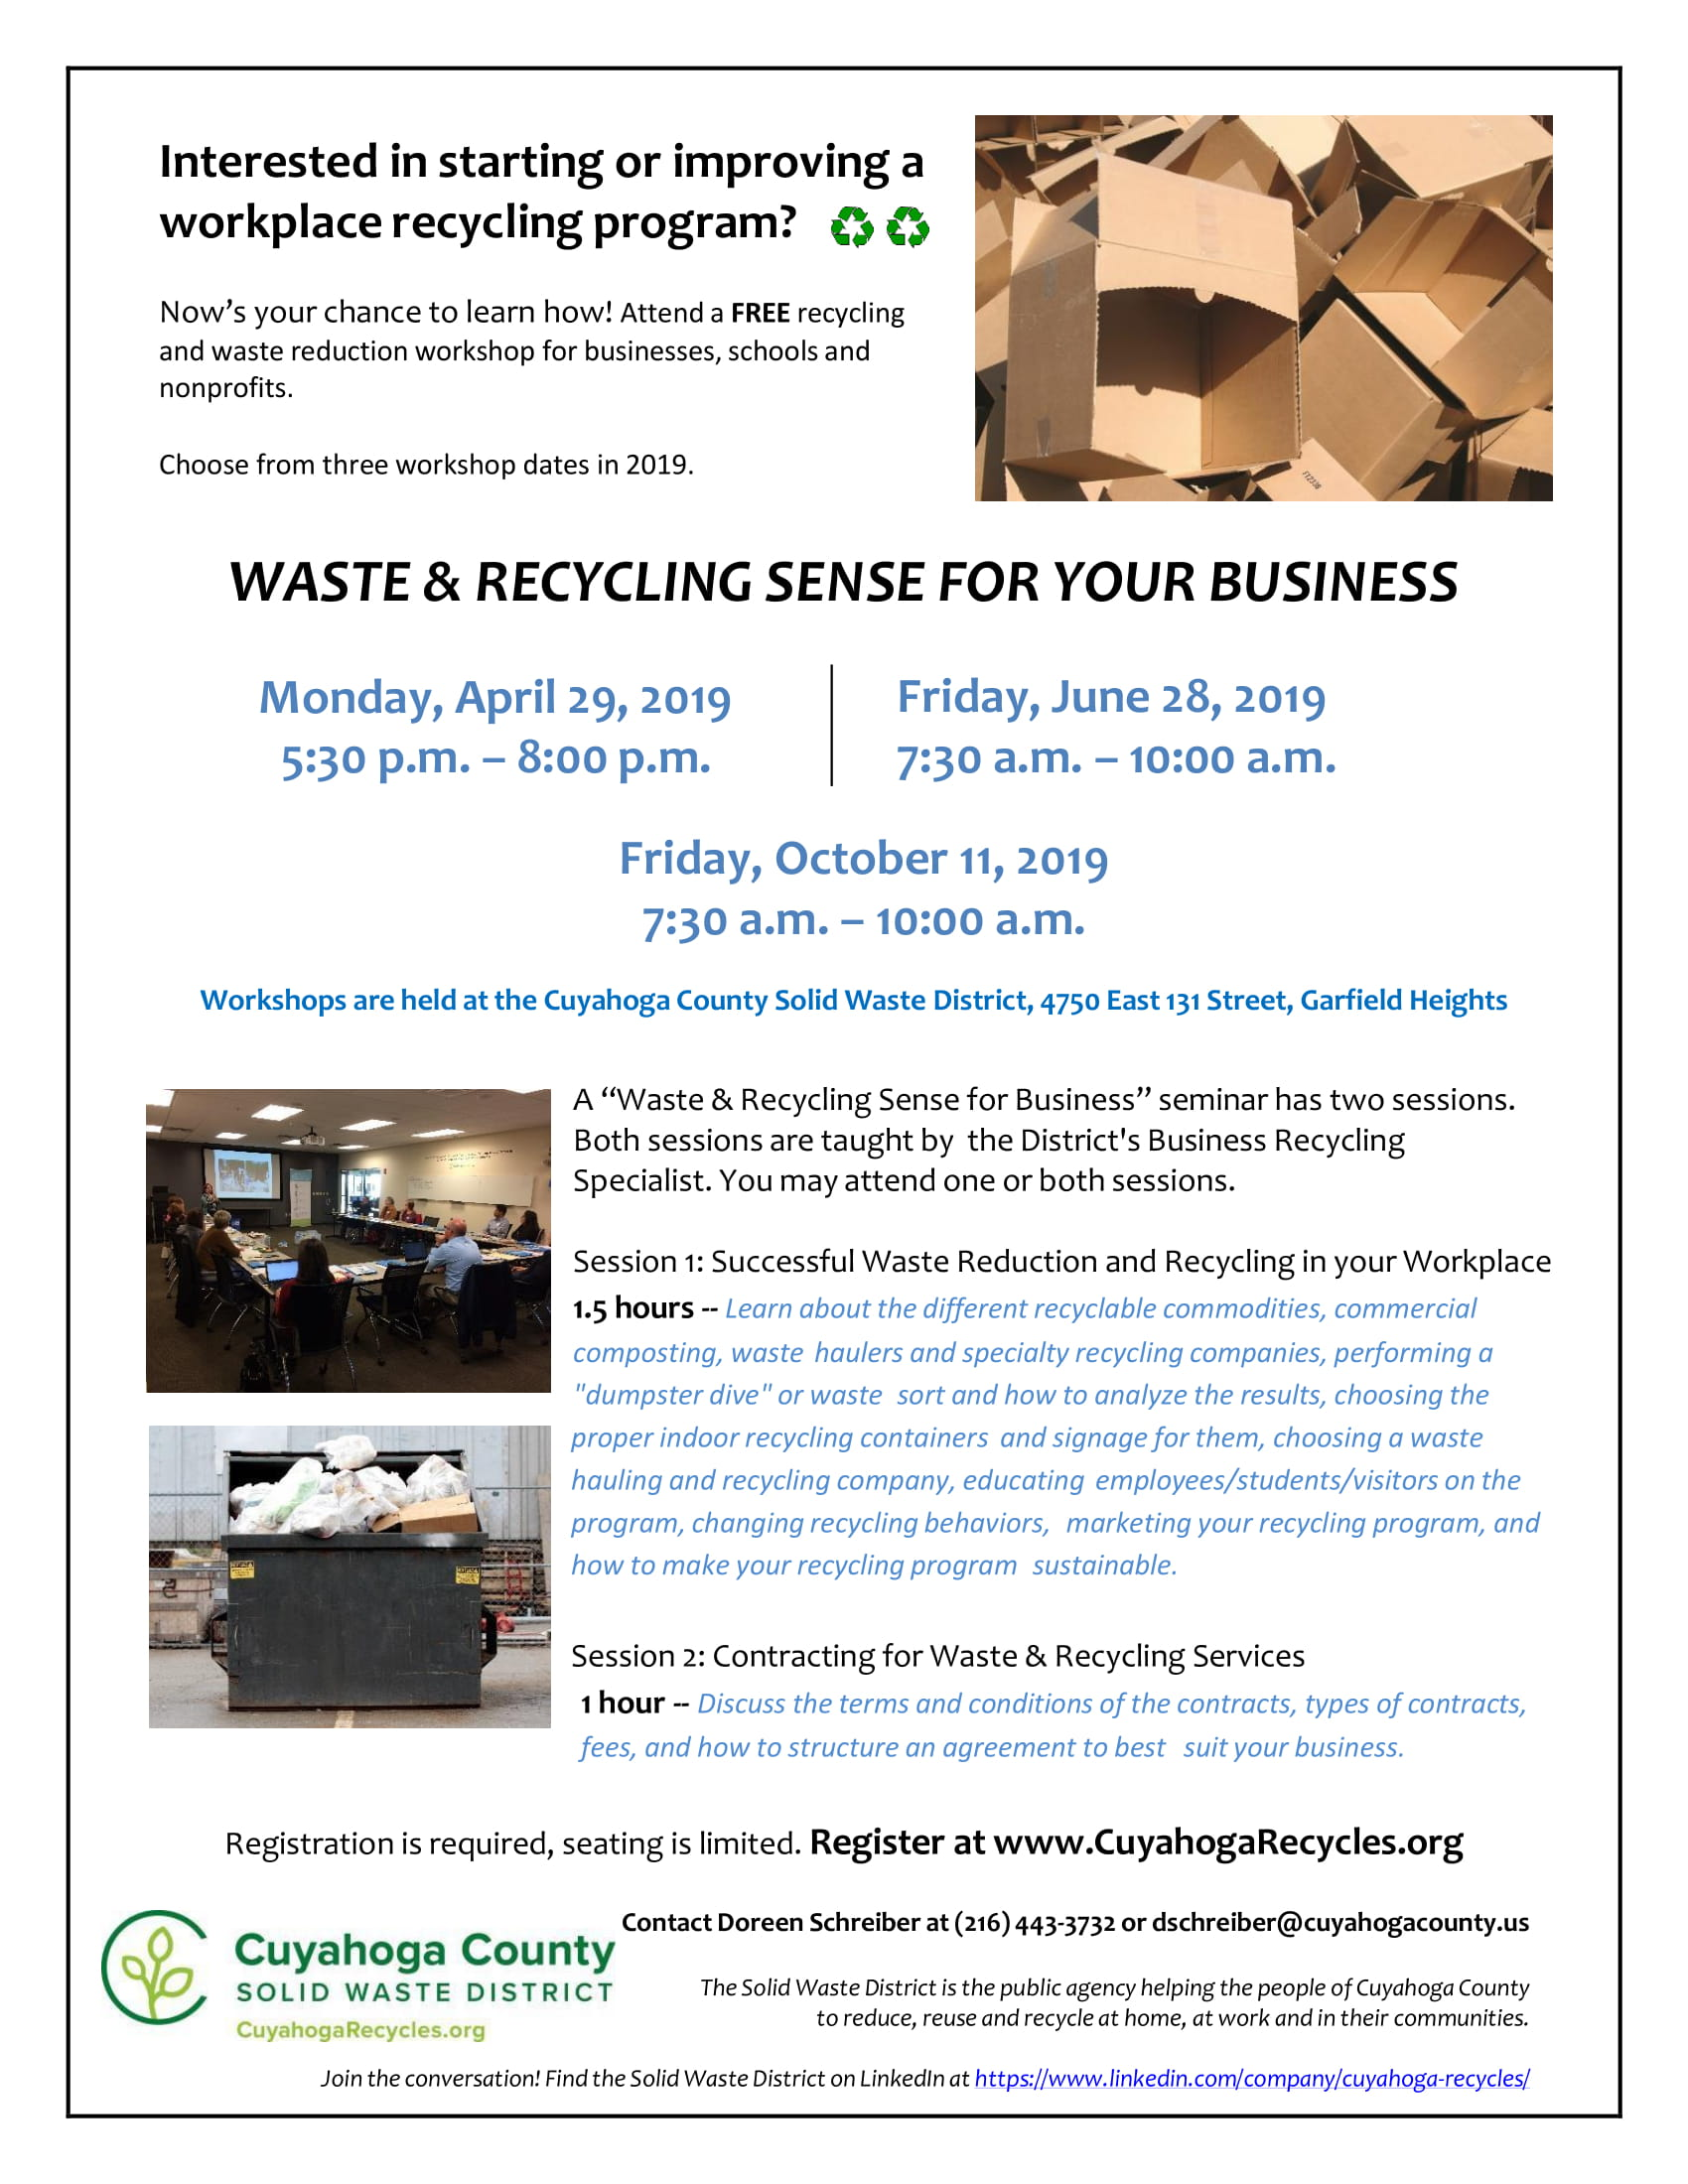 Waste & Recycling Sense for Your Business - Sustainable Cleveland